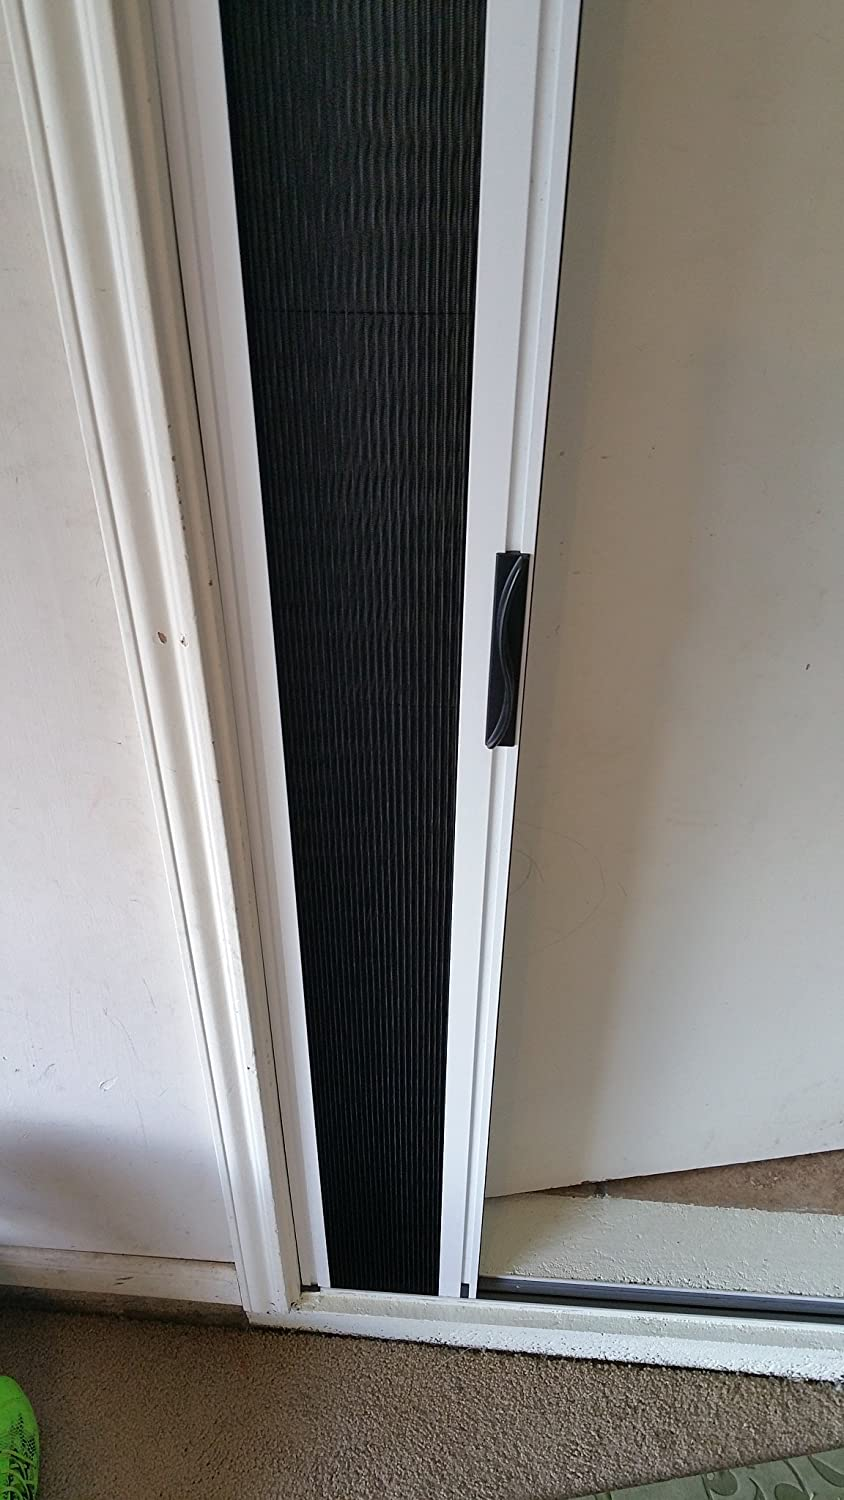 Greenweb retractable screen door 40 inch by 84 inch kit amazon rubansaba